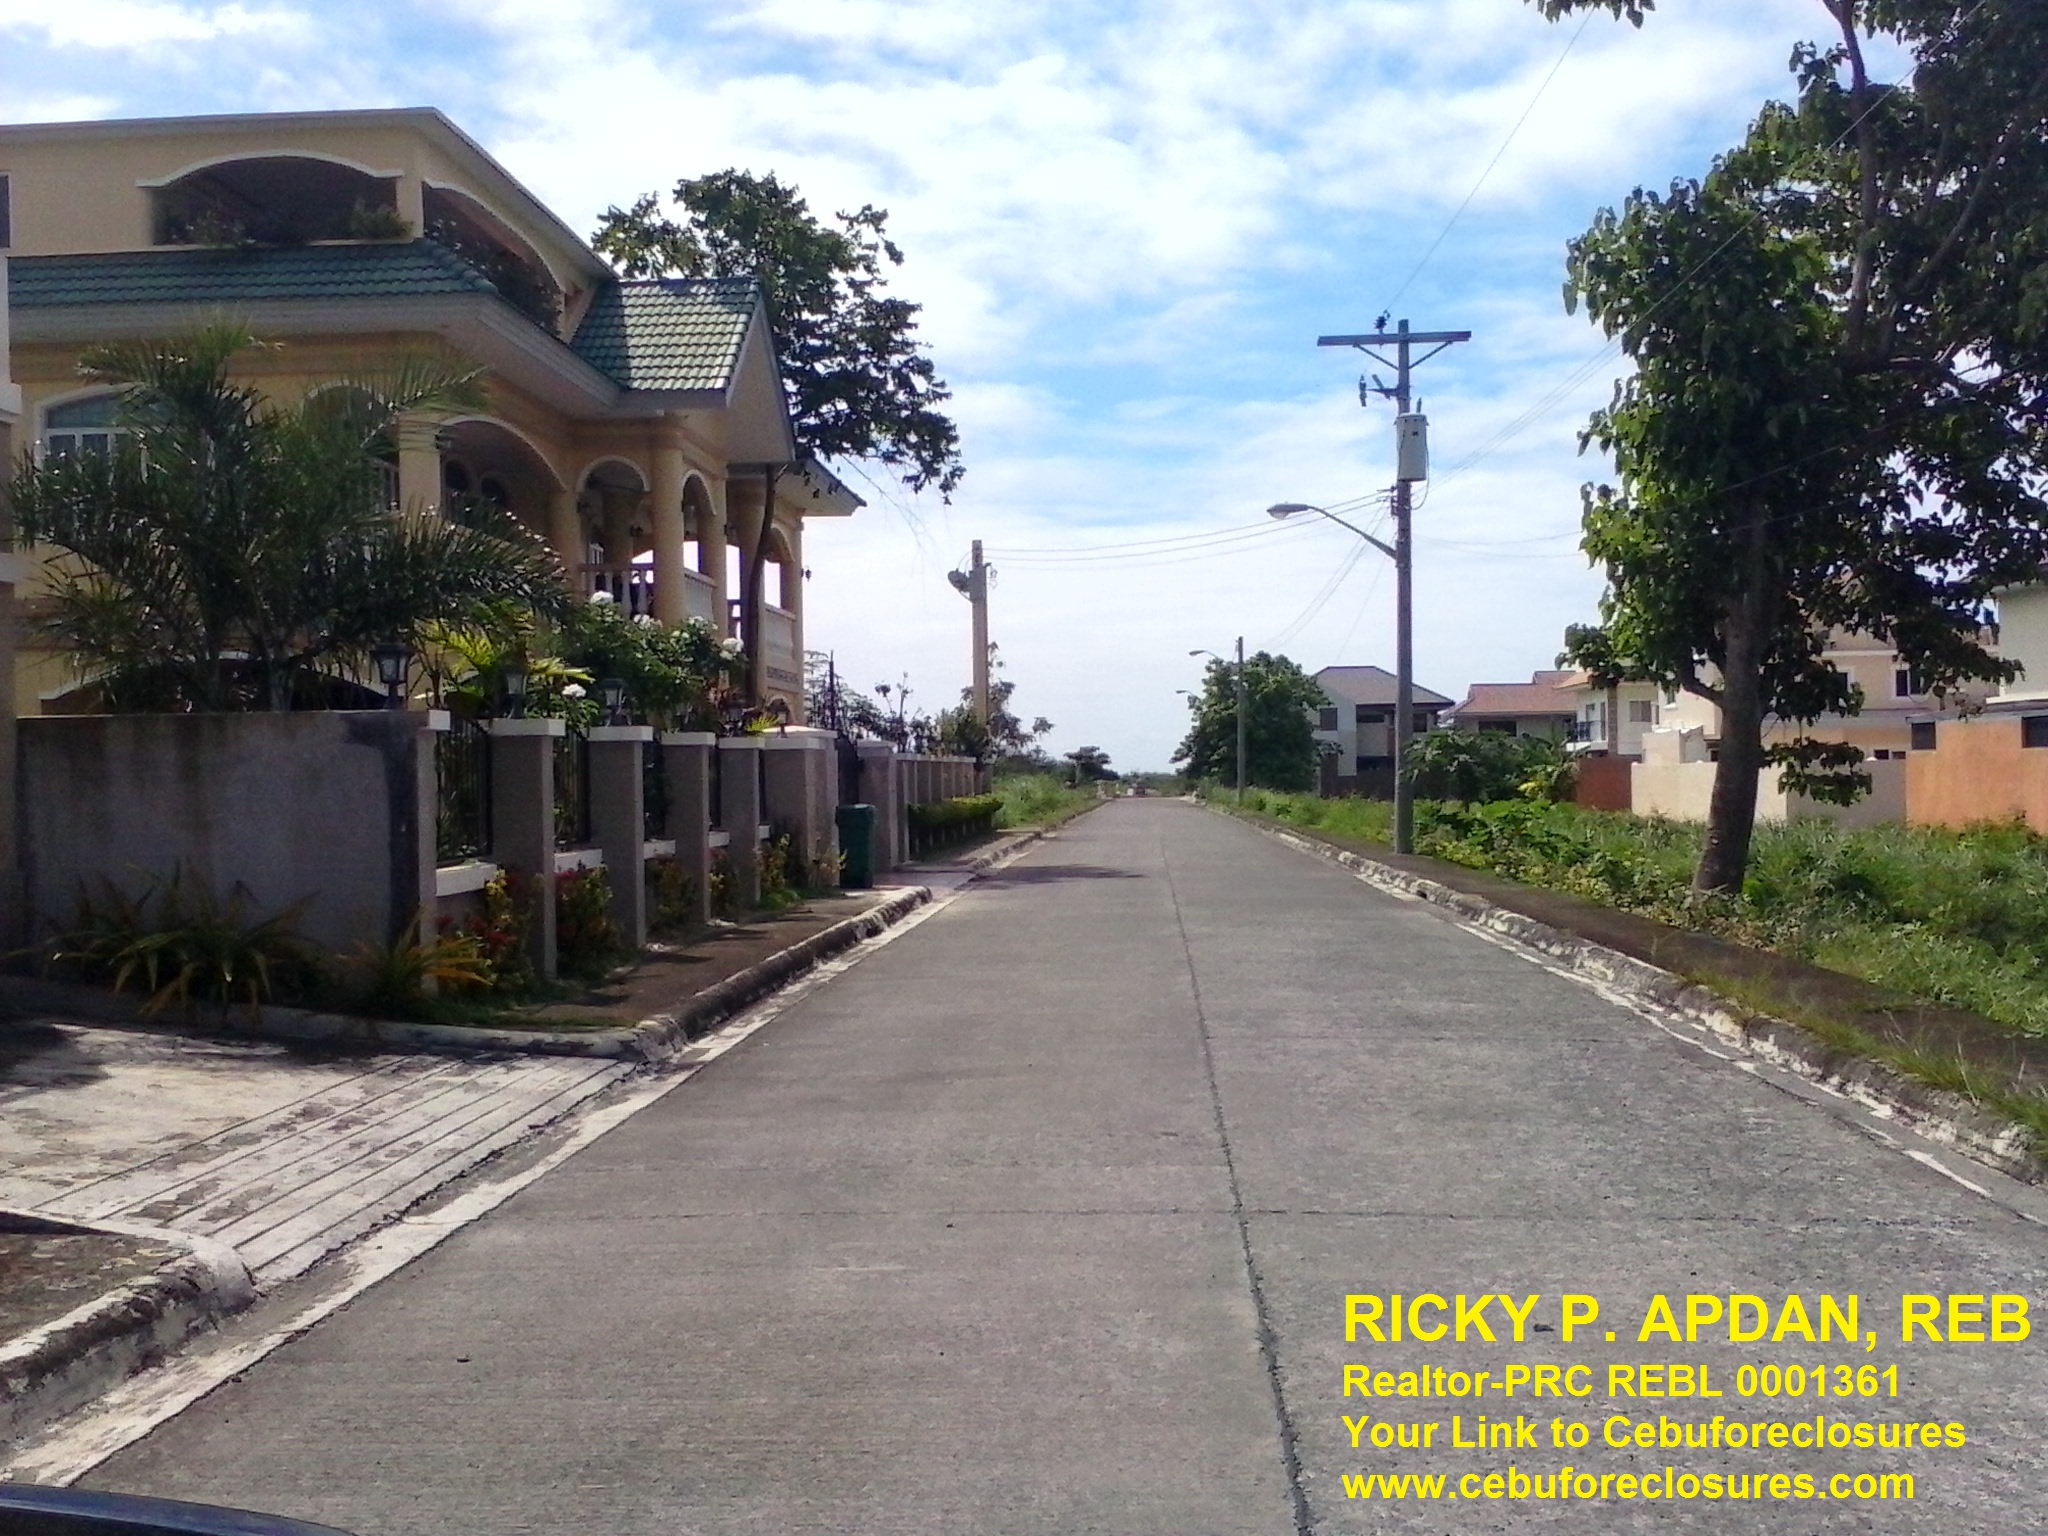 Foreclosed Lots For Sale In Baguio City